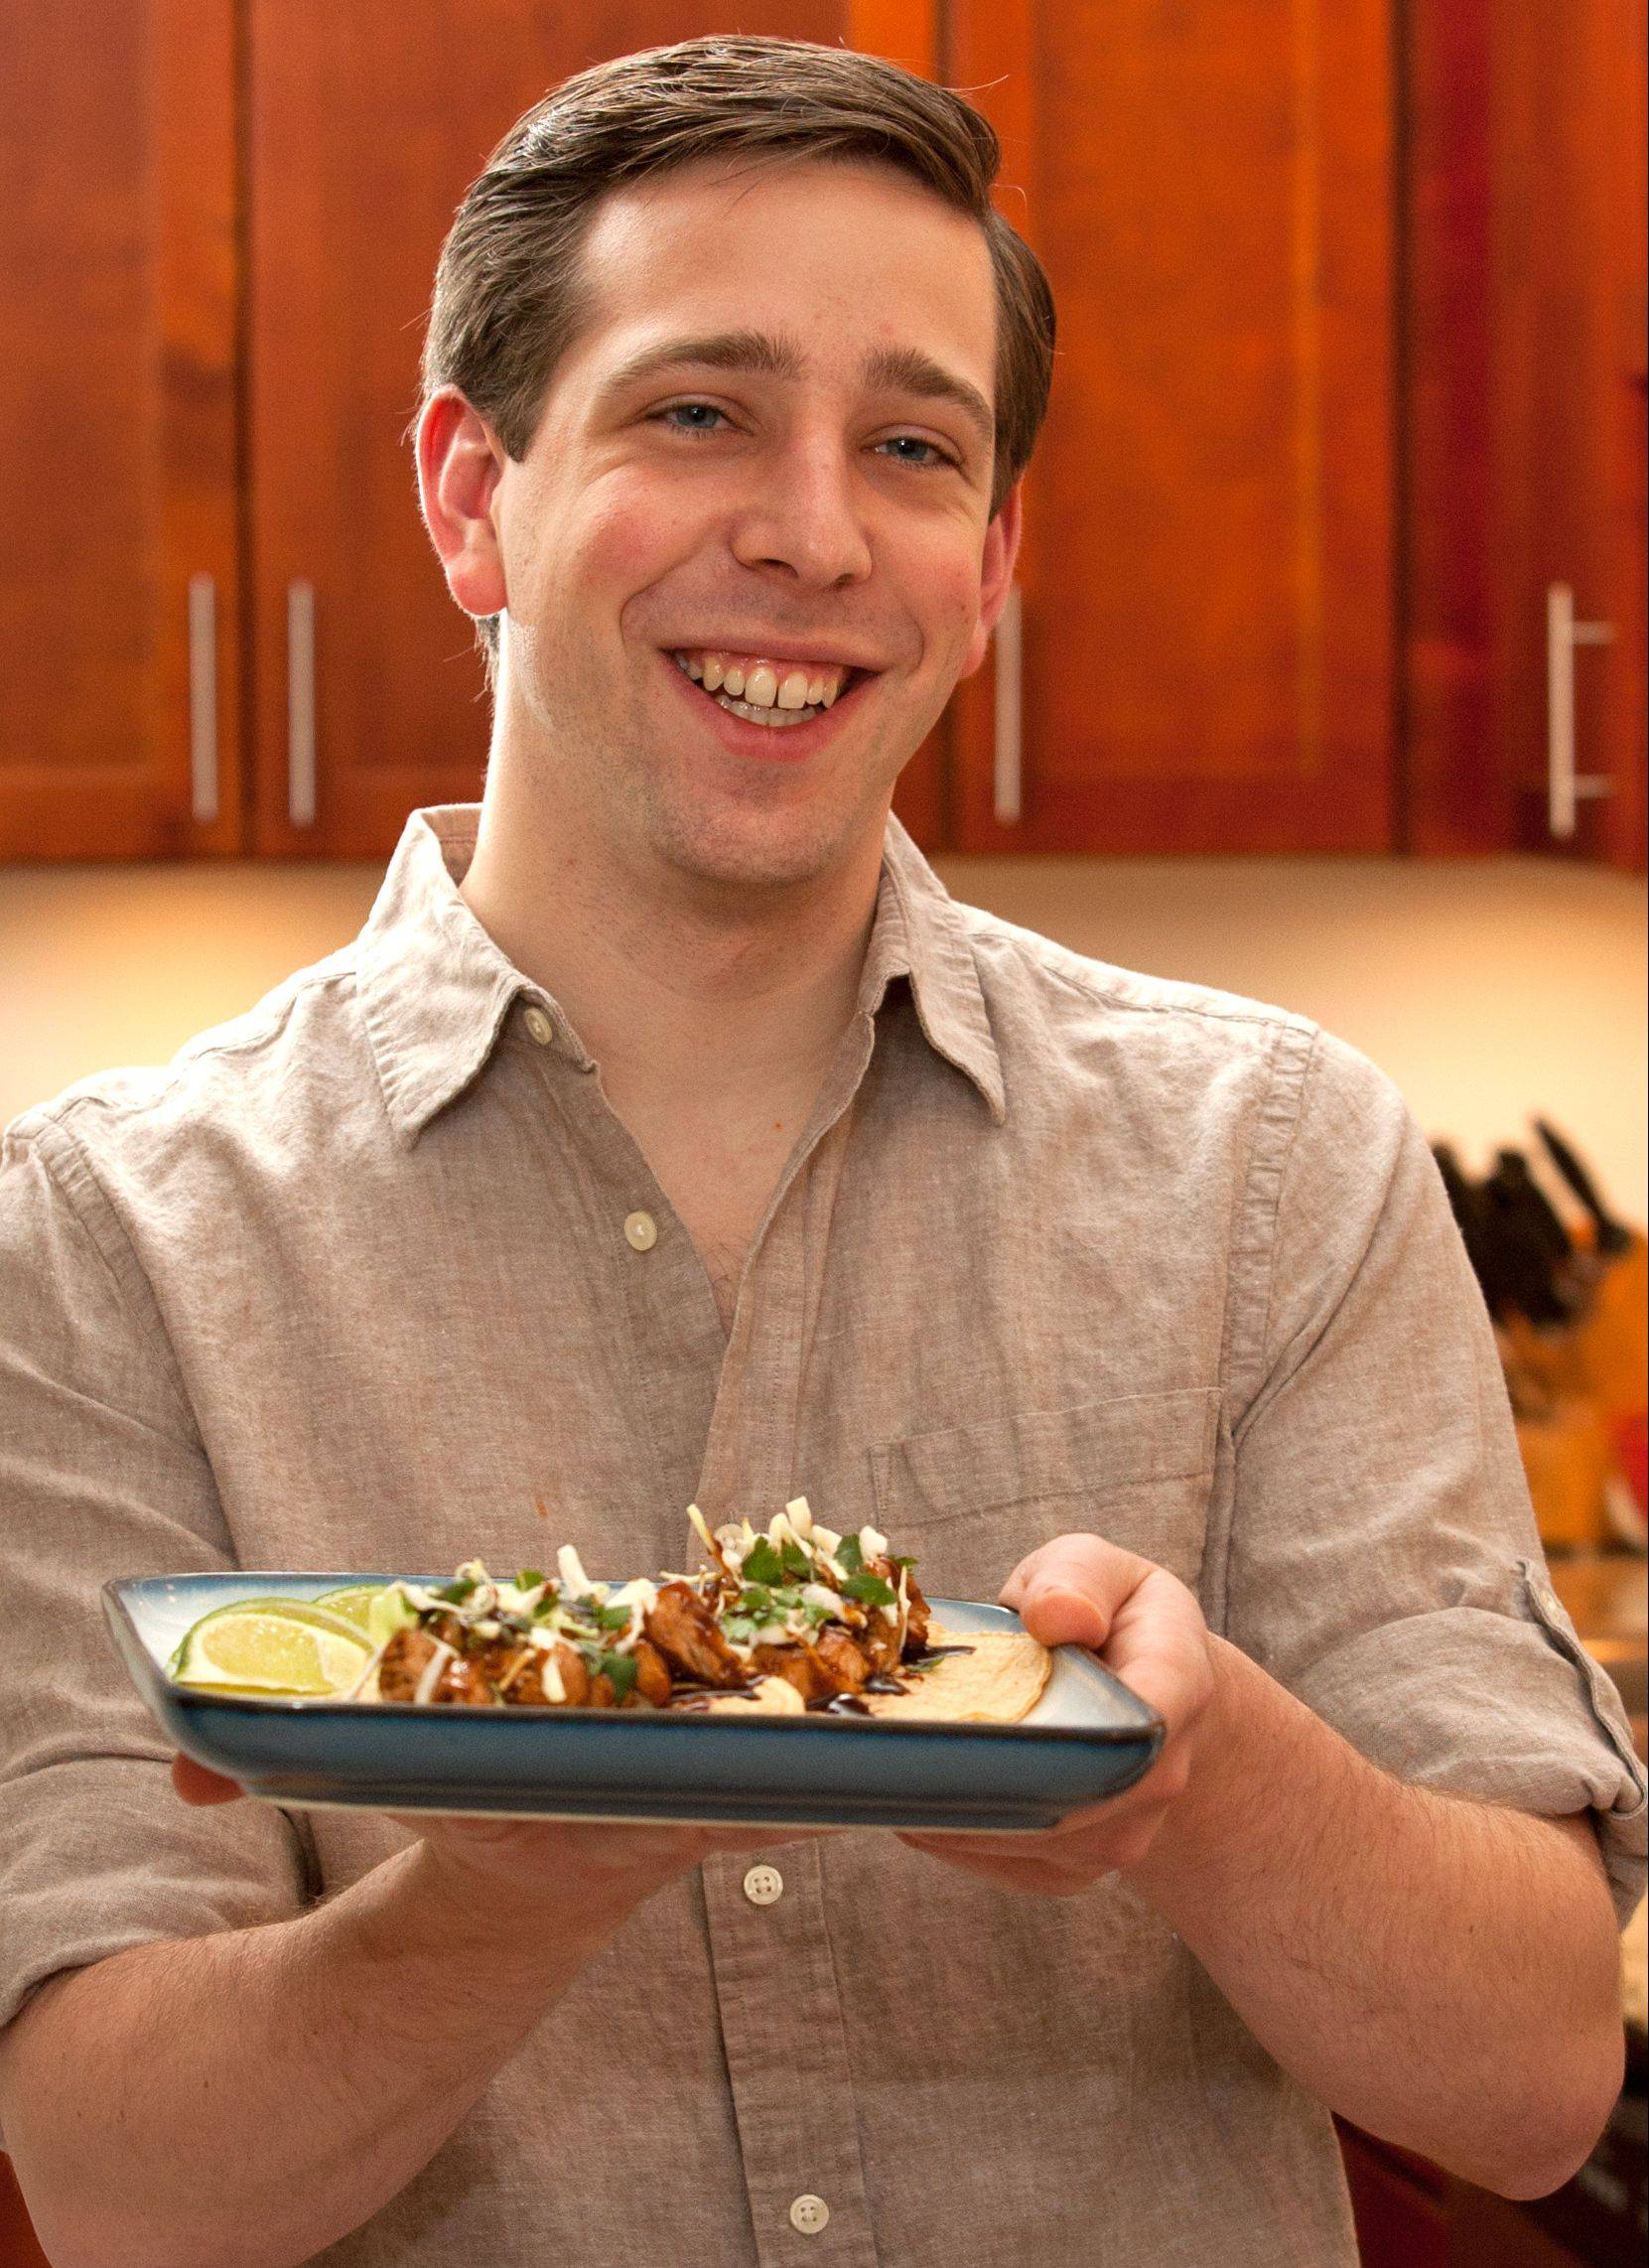 When he was in college Nick Ninedorf finally broke out of his picky eater shell. Now he enjoys creating recipes with bold flavors, like these Korean-style tacos.